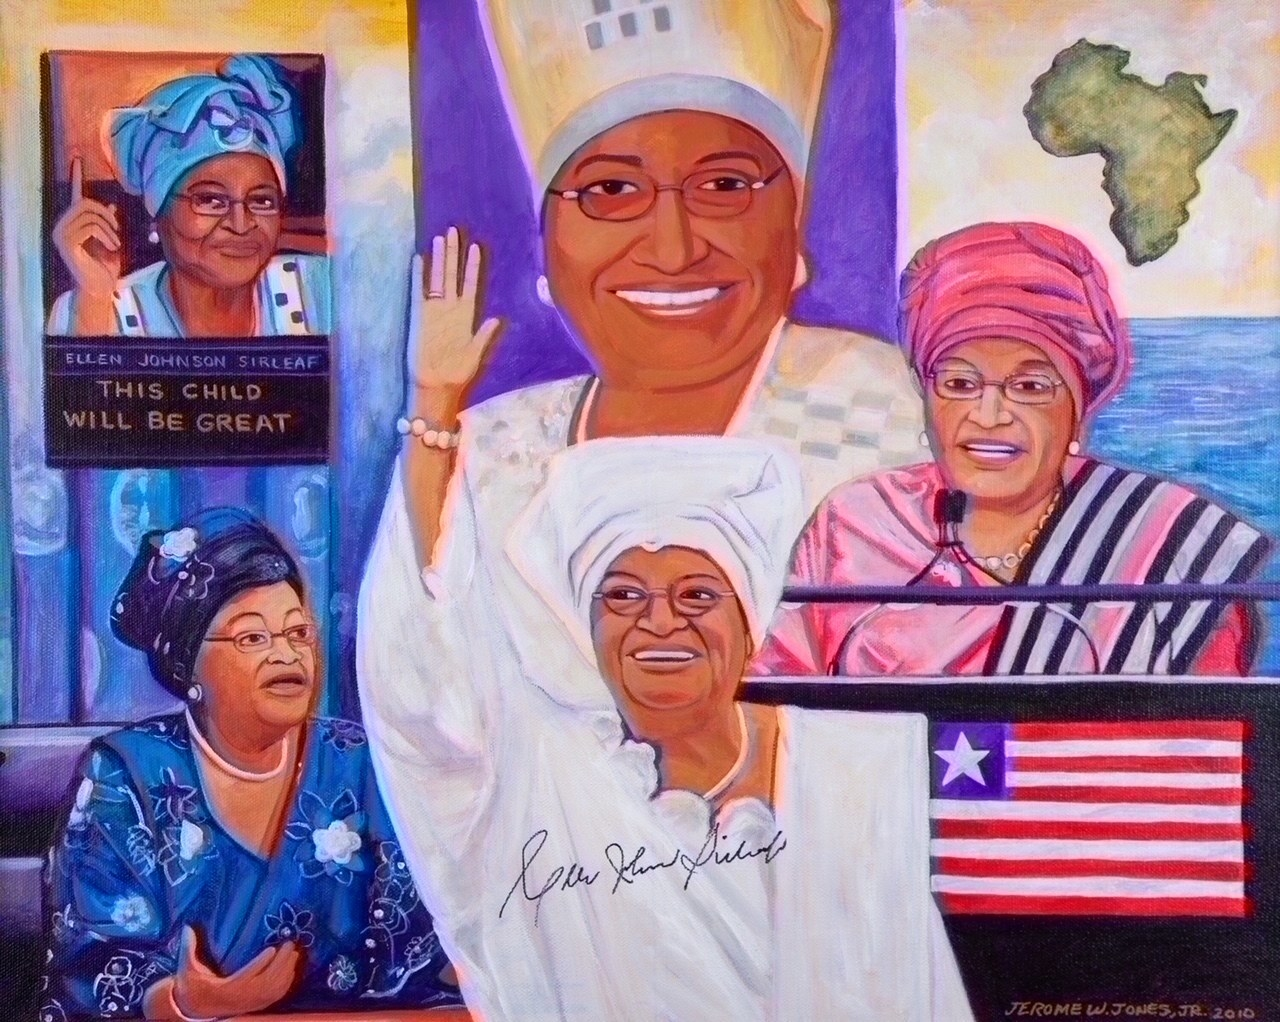 Painting of Ellen Johnson Sirleaf, the former president of Liberia, in different outfits